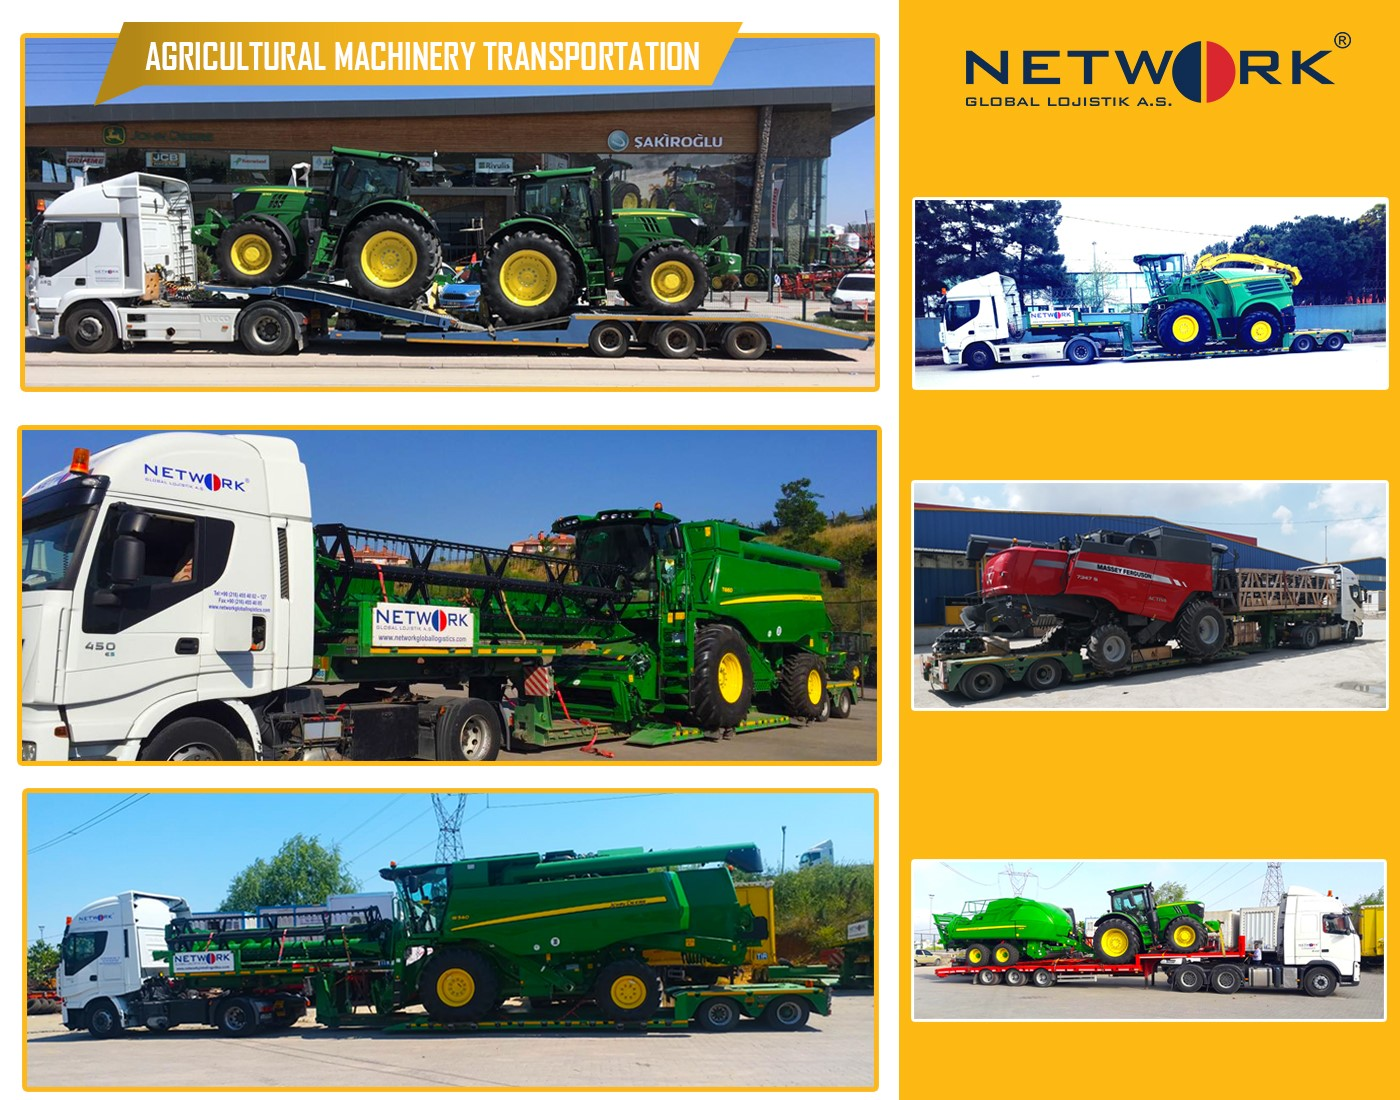 Agricultural Machinery Transport